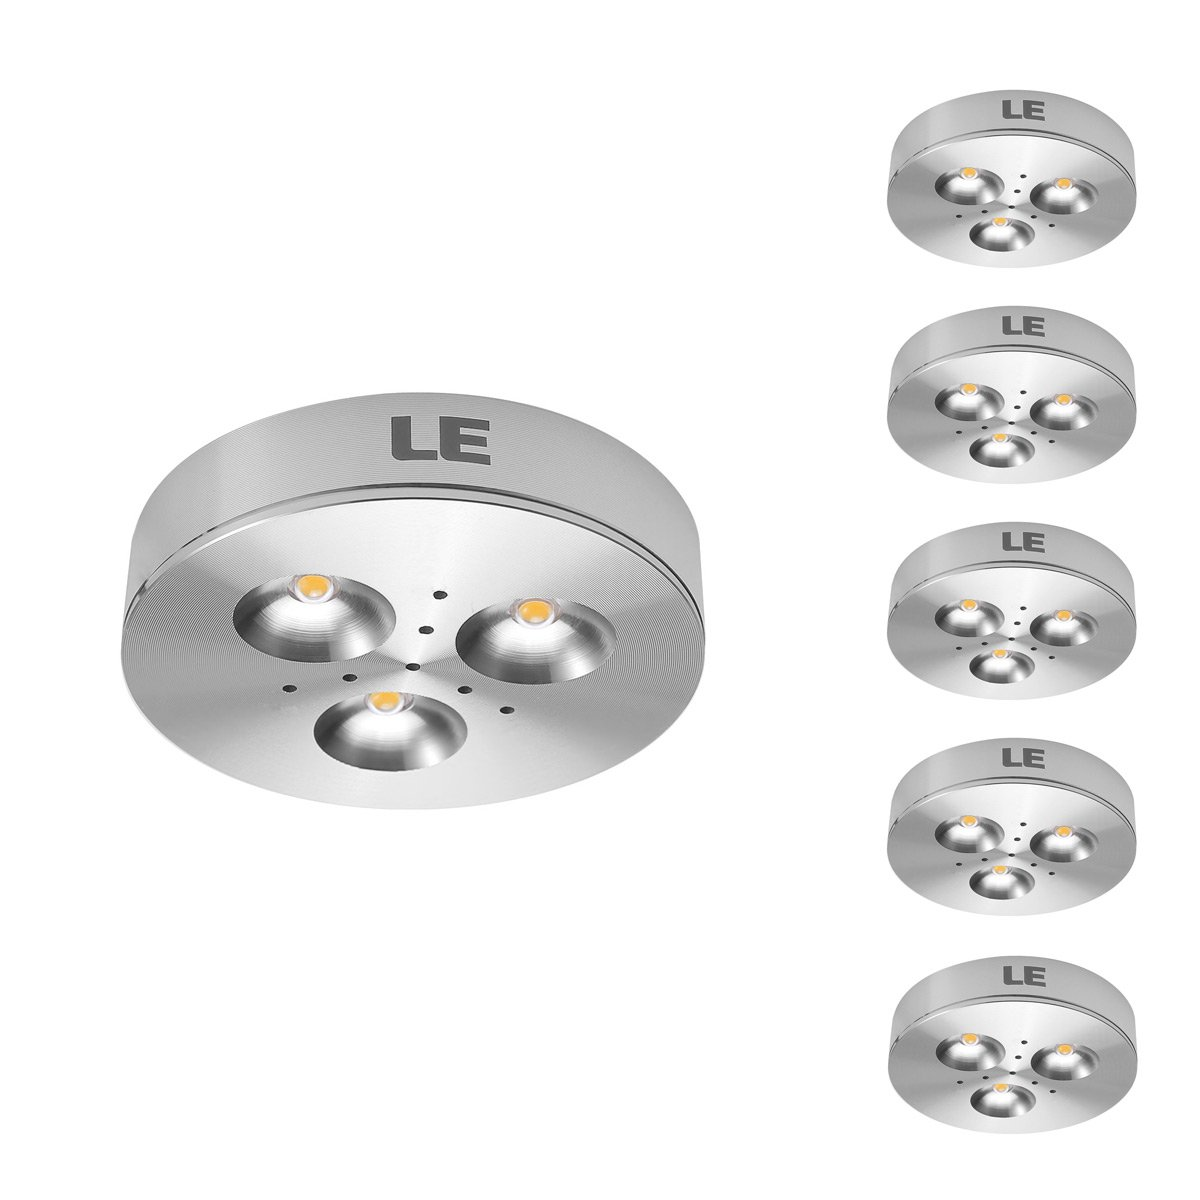 Le 5 pack led under cabinet lighting brightest puck lights 12v dc le 5 pack led under cabinet lighting brightest puck lights 12v dc under counter lighting 25w halogen replacement 240lm warm white amazon mozeypictures